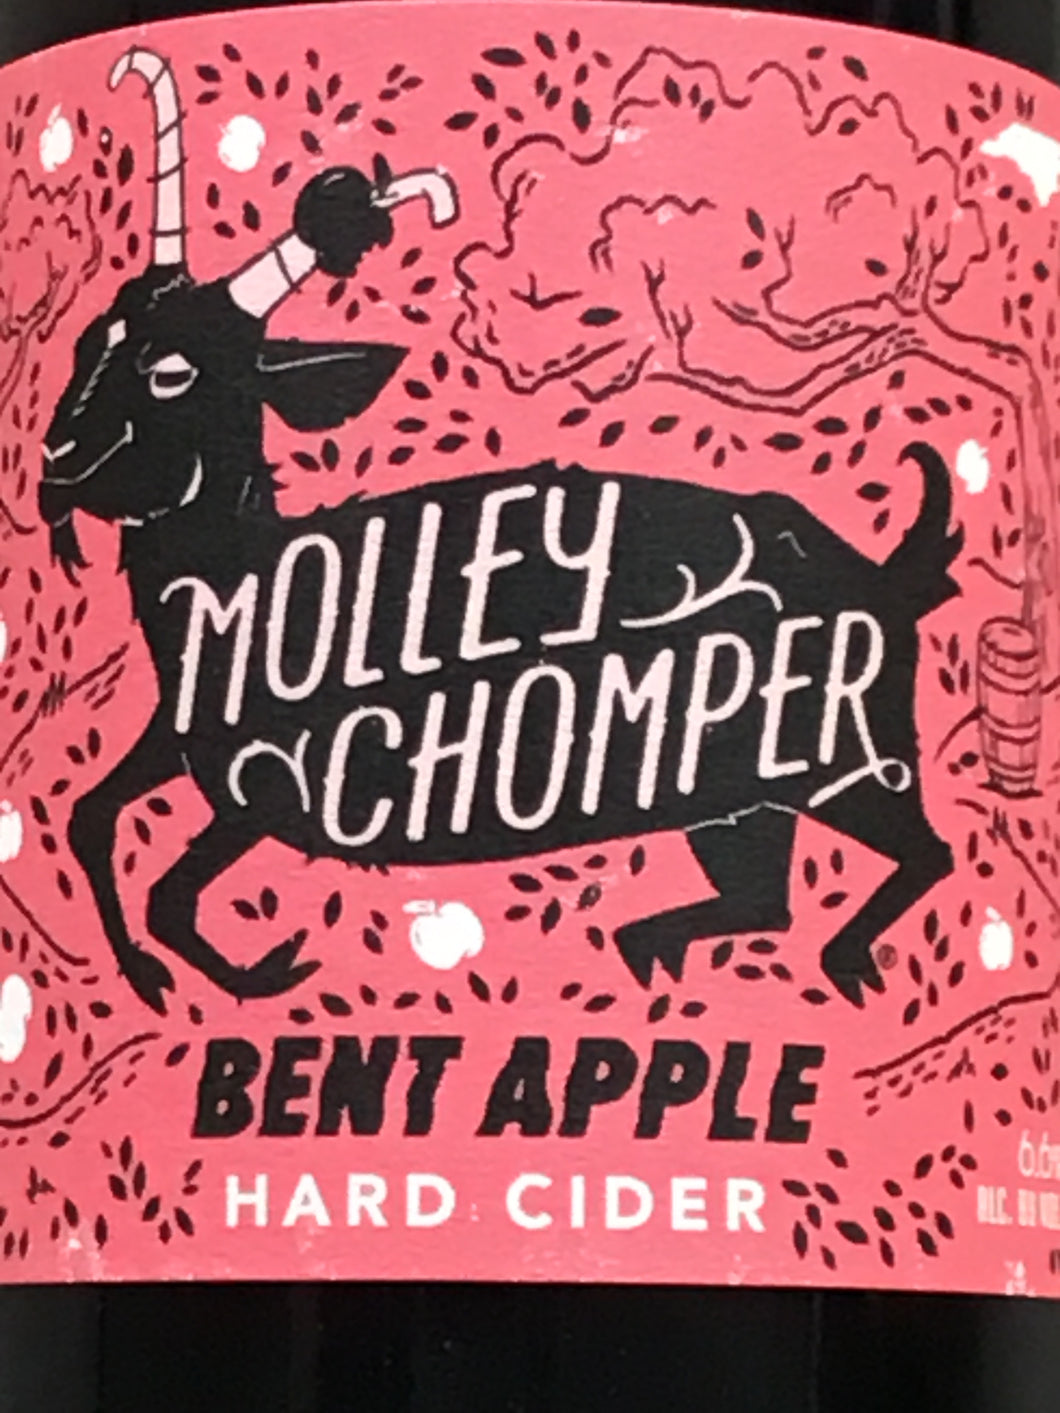 Molley Chomper - Bent Apple - 500ml